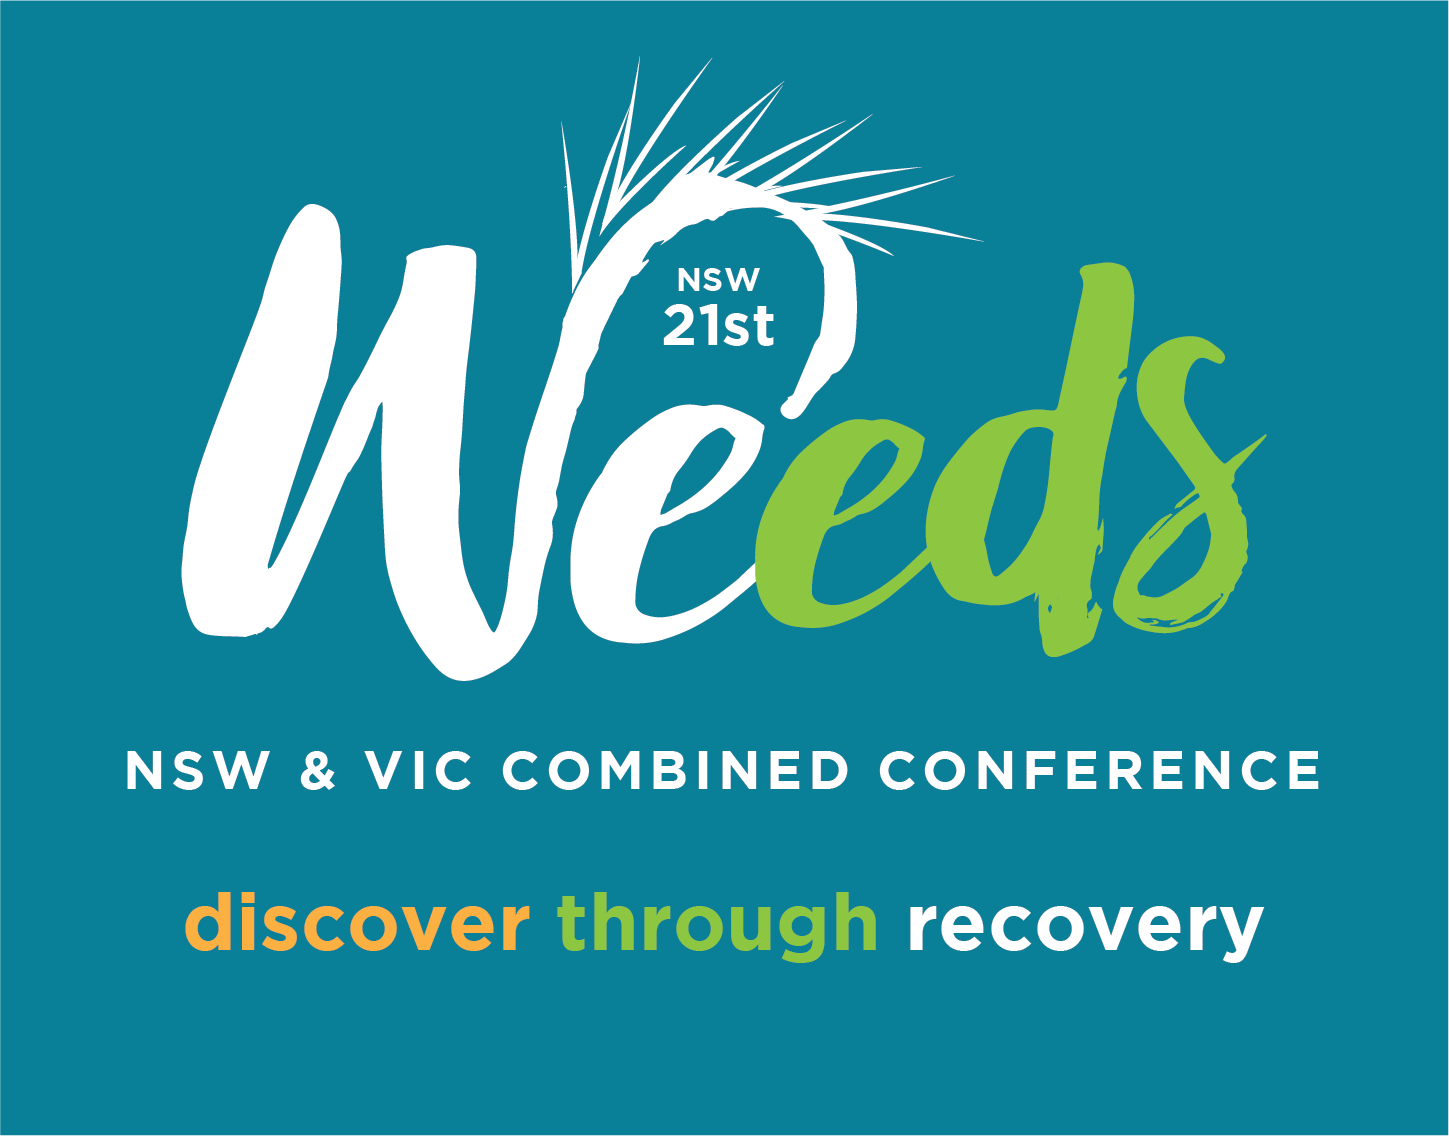 21st NSW Weeds Conference logo with the byline - discover through recovery